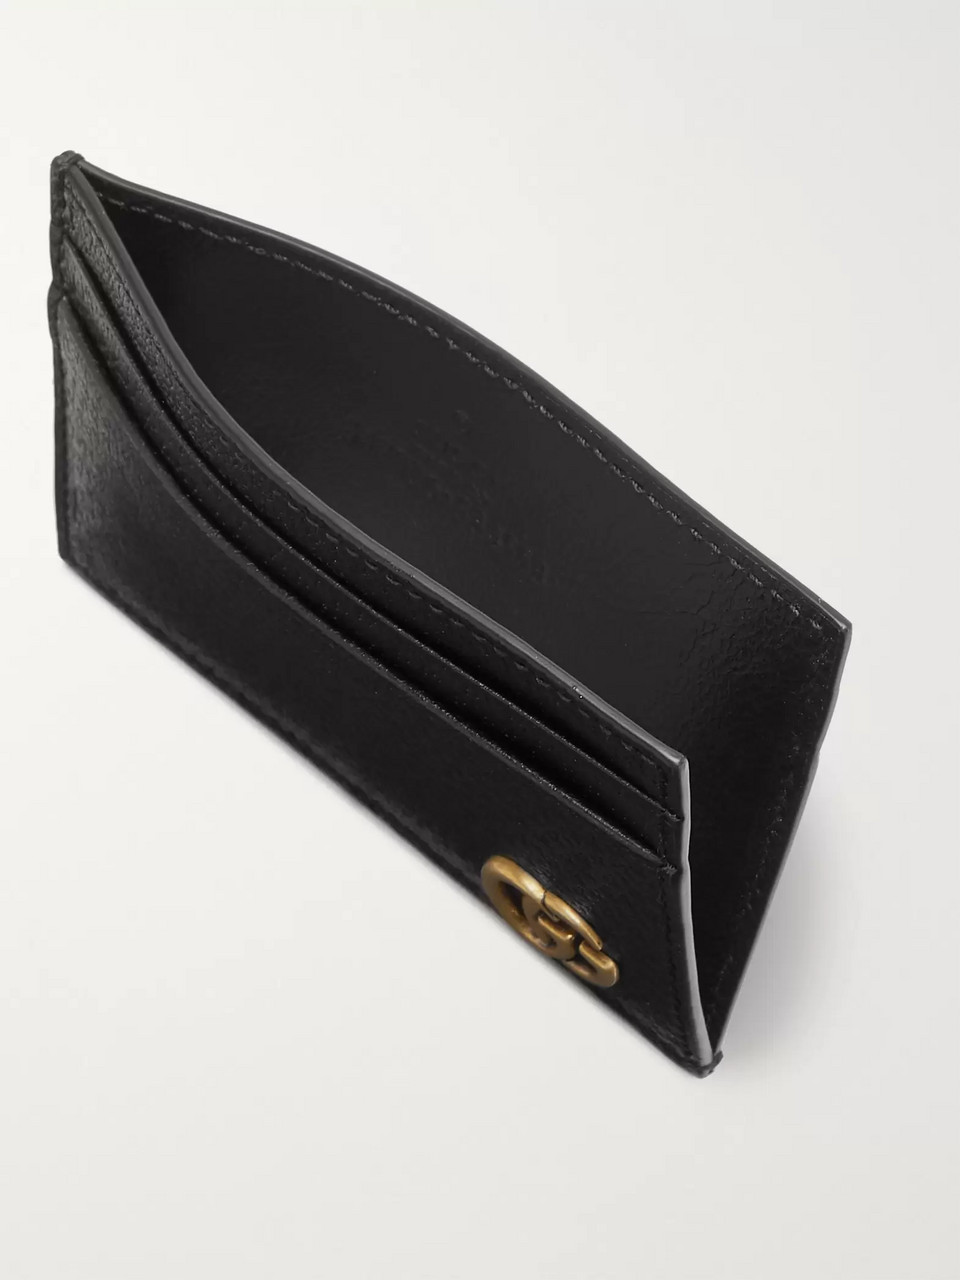 Gucci Marmont Full-Grain Leather Cardholder